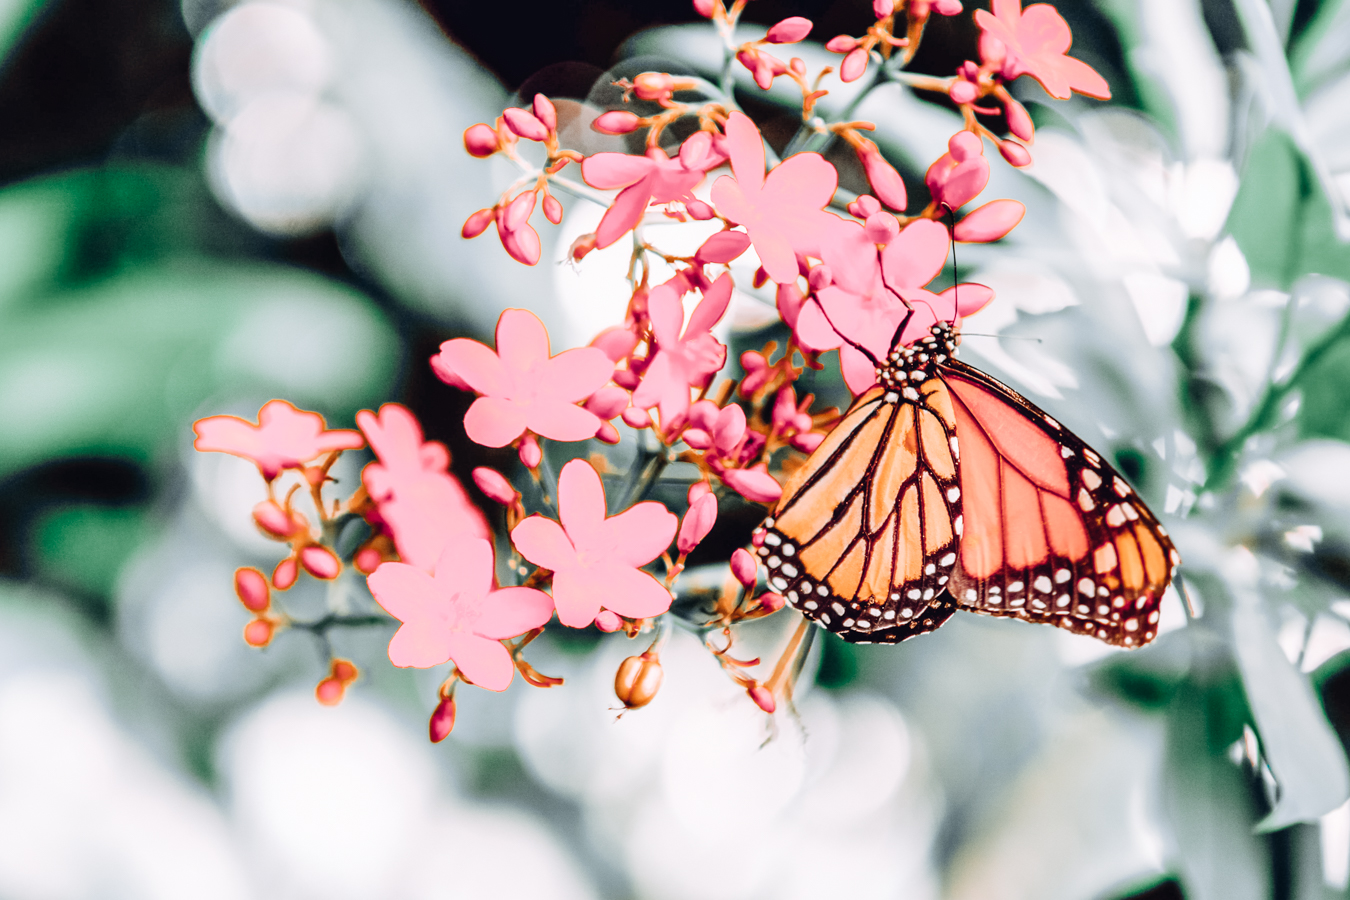 Flowers and butterfly at the Phipps Conservatory and Botanical Gardens